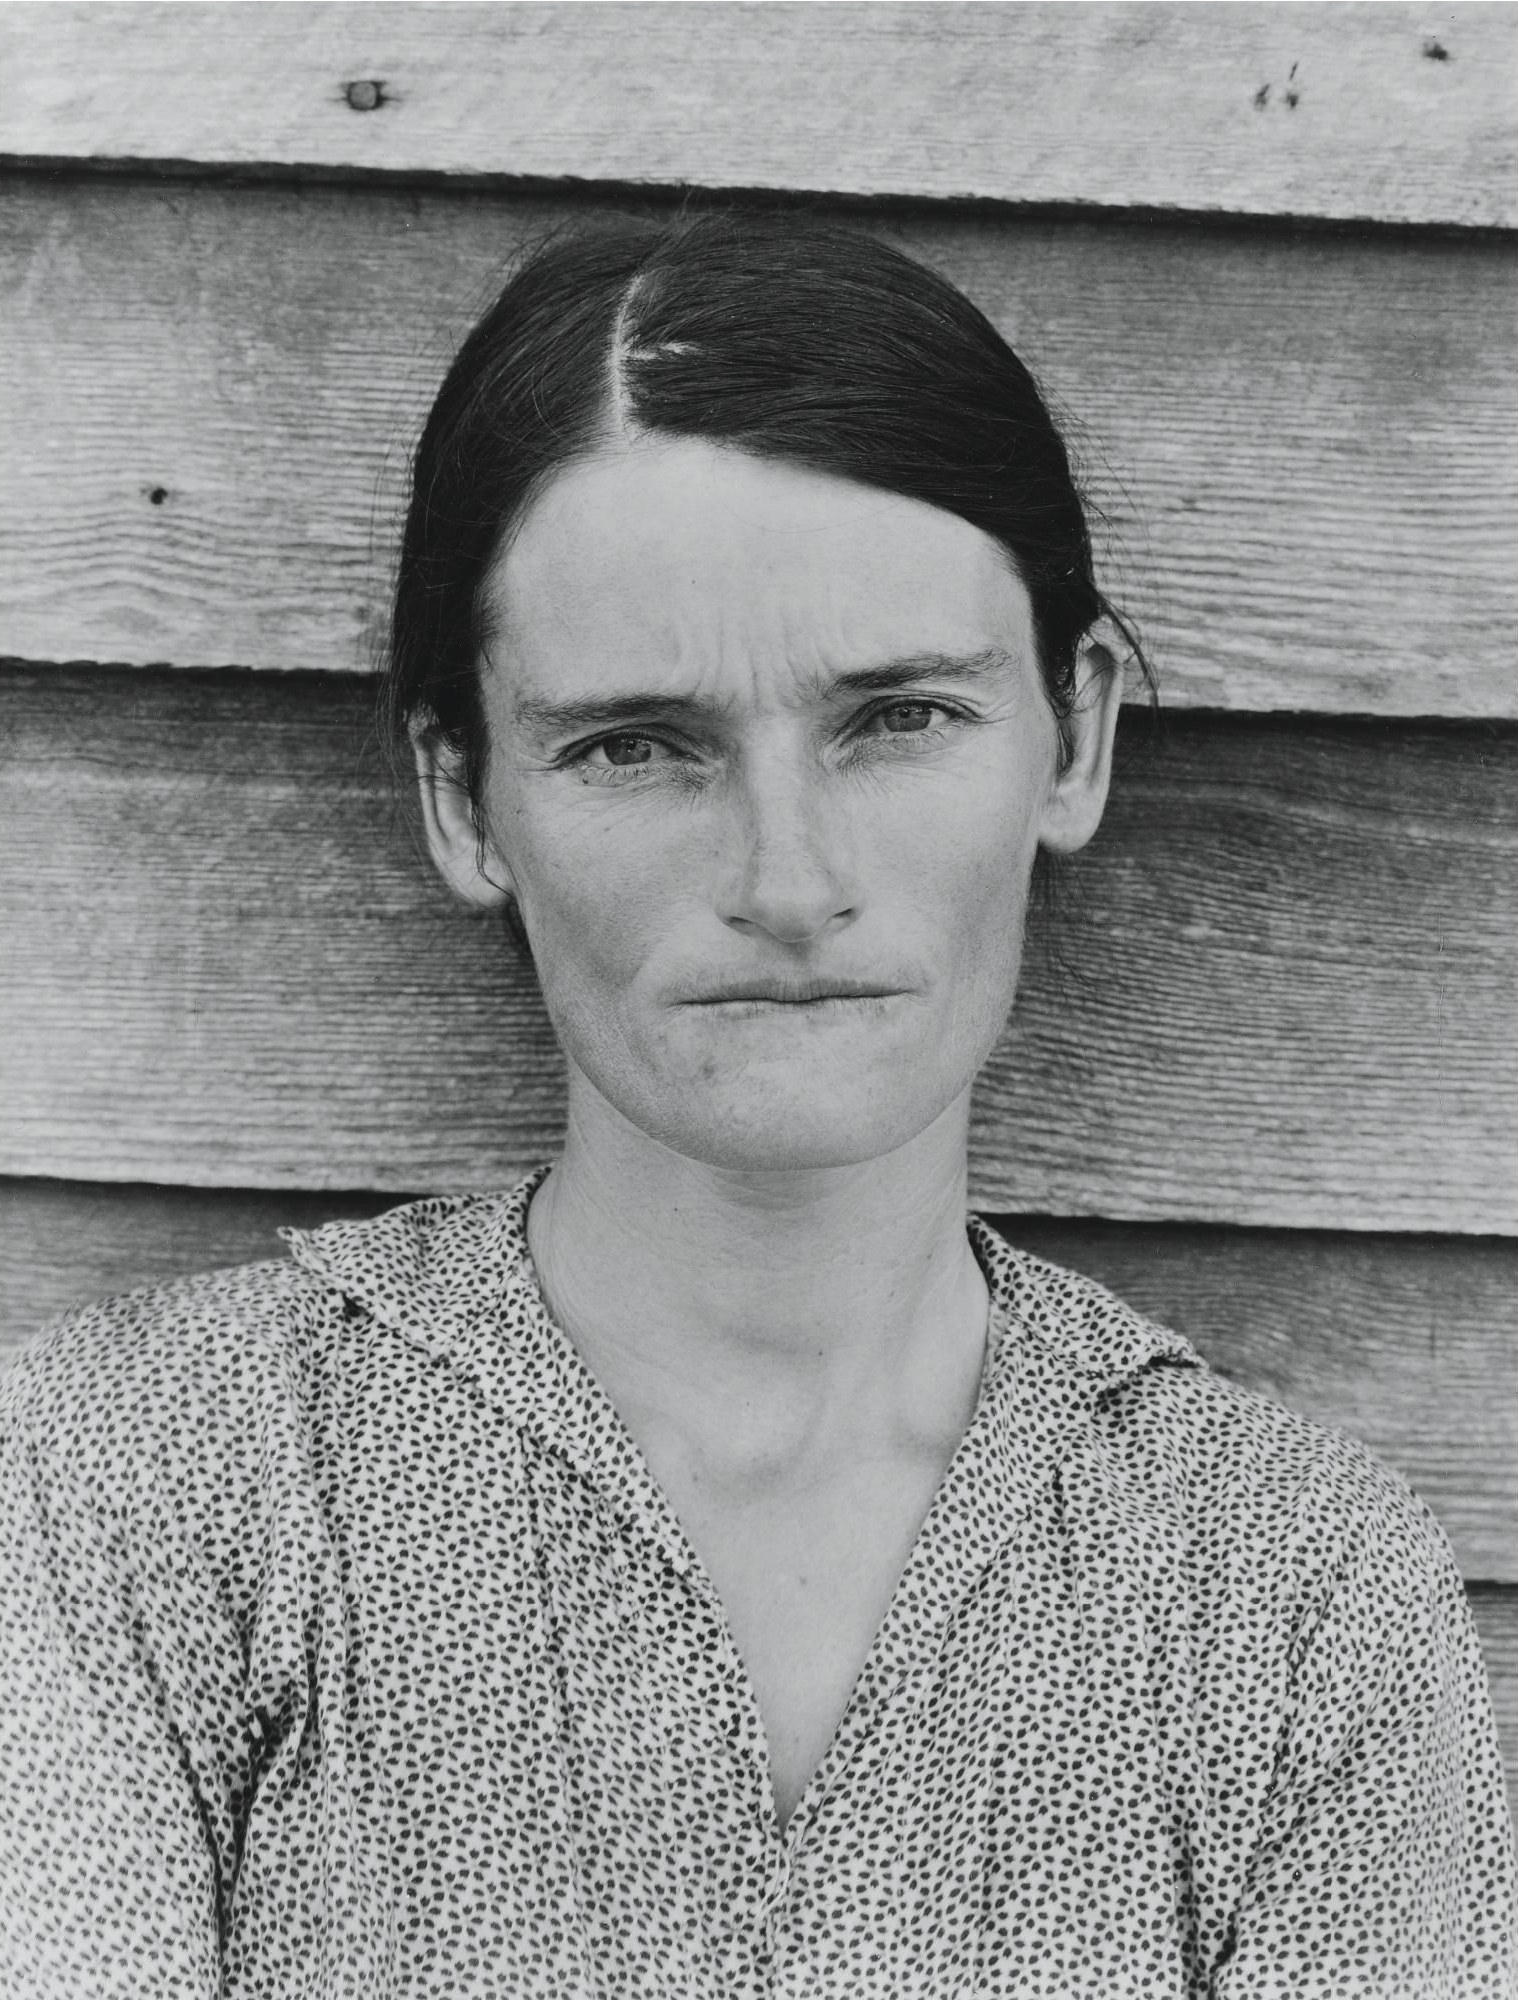 Walker Evans, Alabama Tenant Farmer Wife, 1936. Gelatin Silver Print. The Metropolitan Museum of Art, NYC.